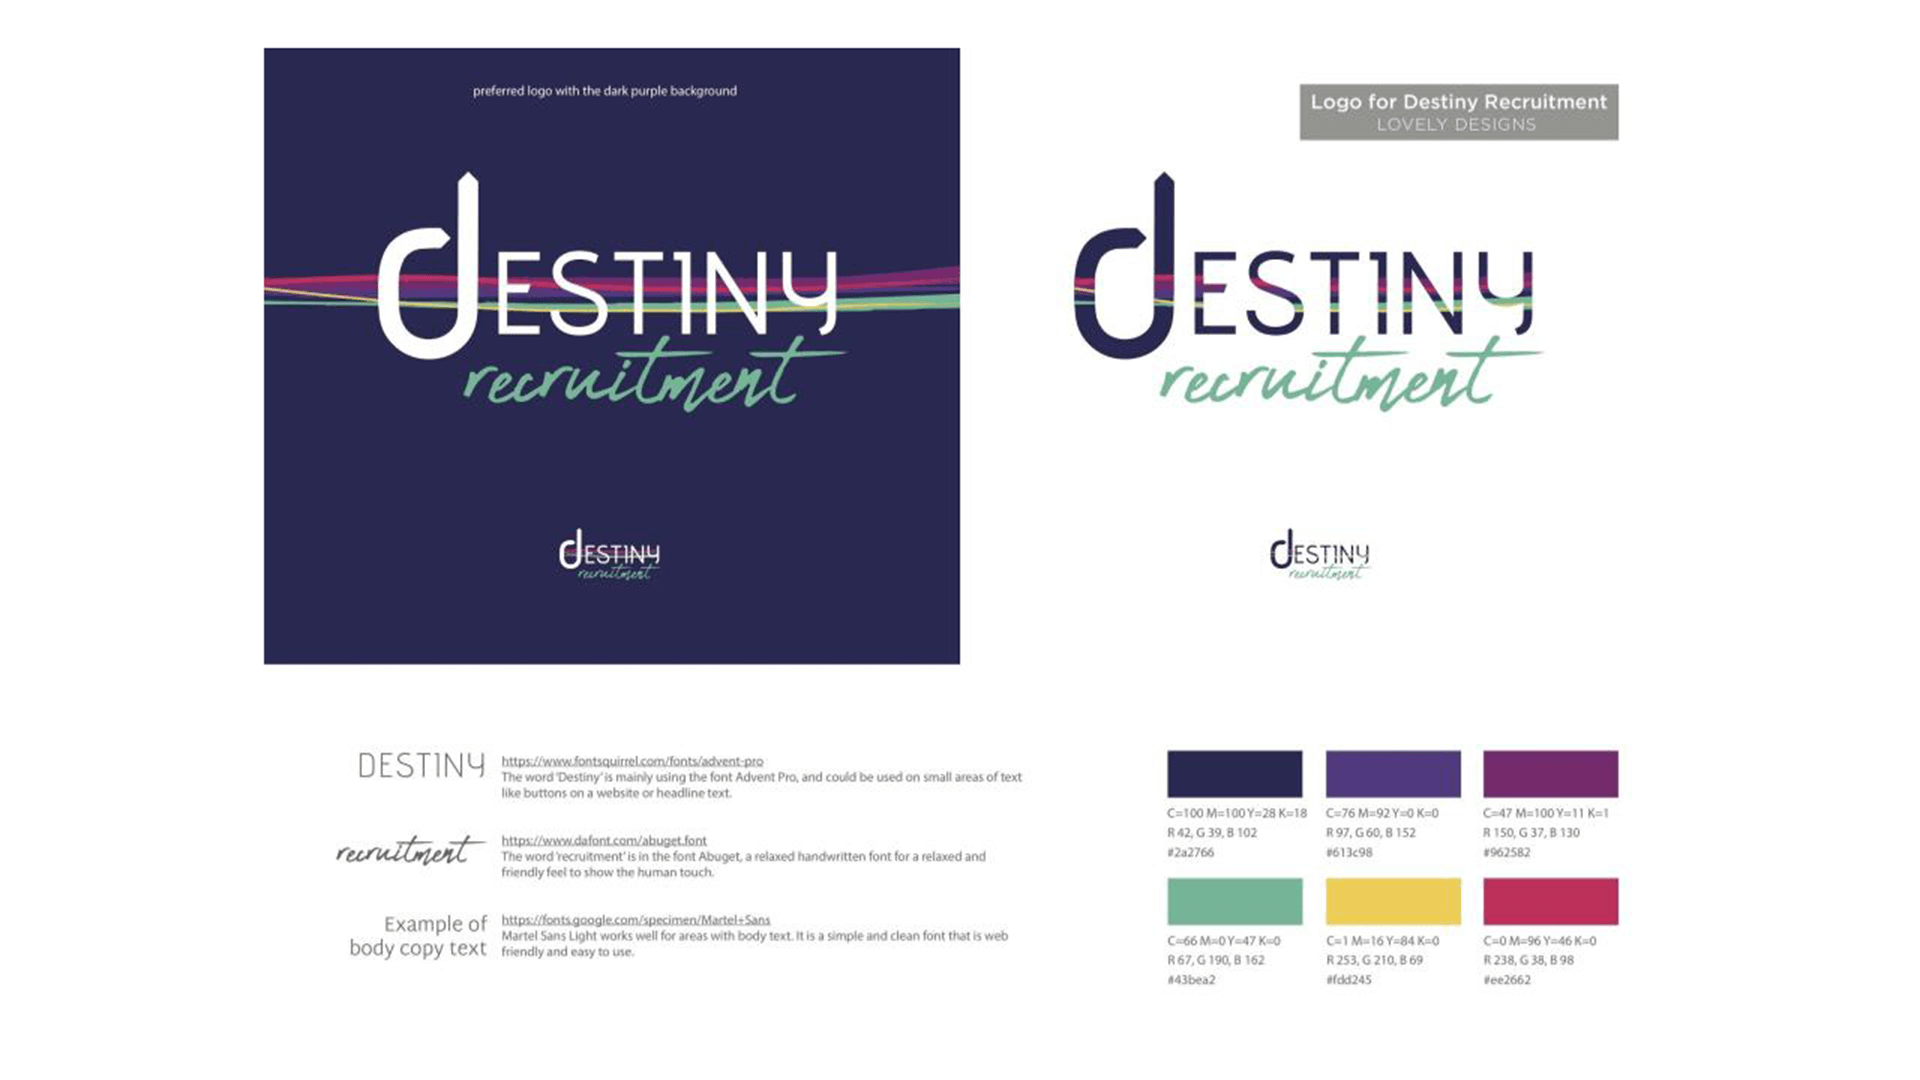 Destiny Recruitment brand guidelines